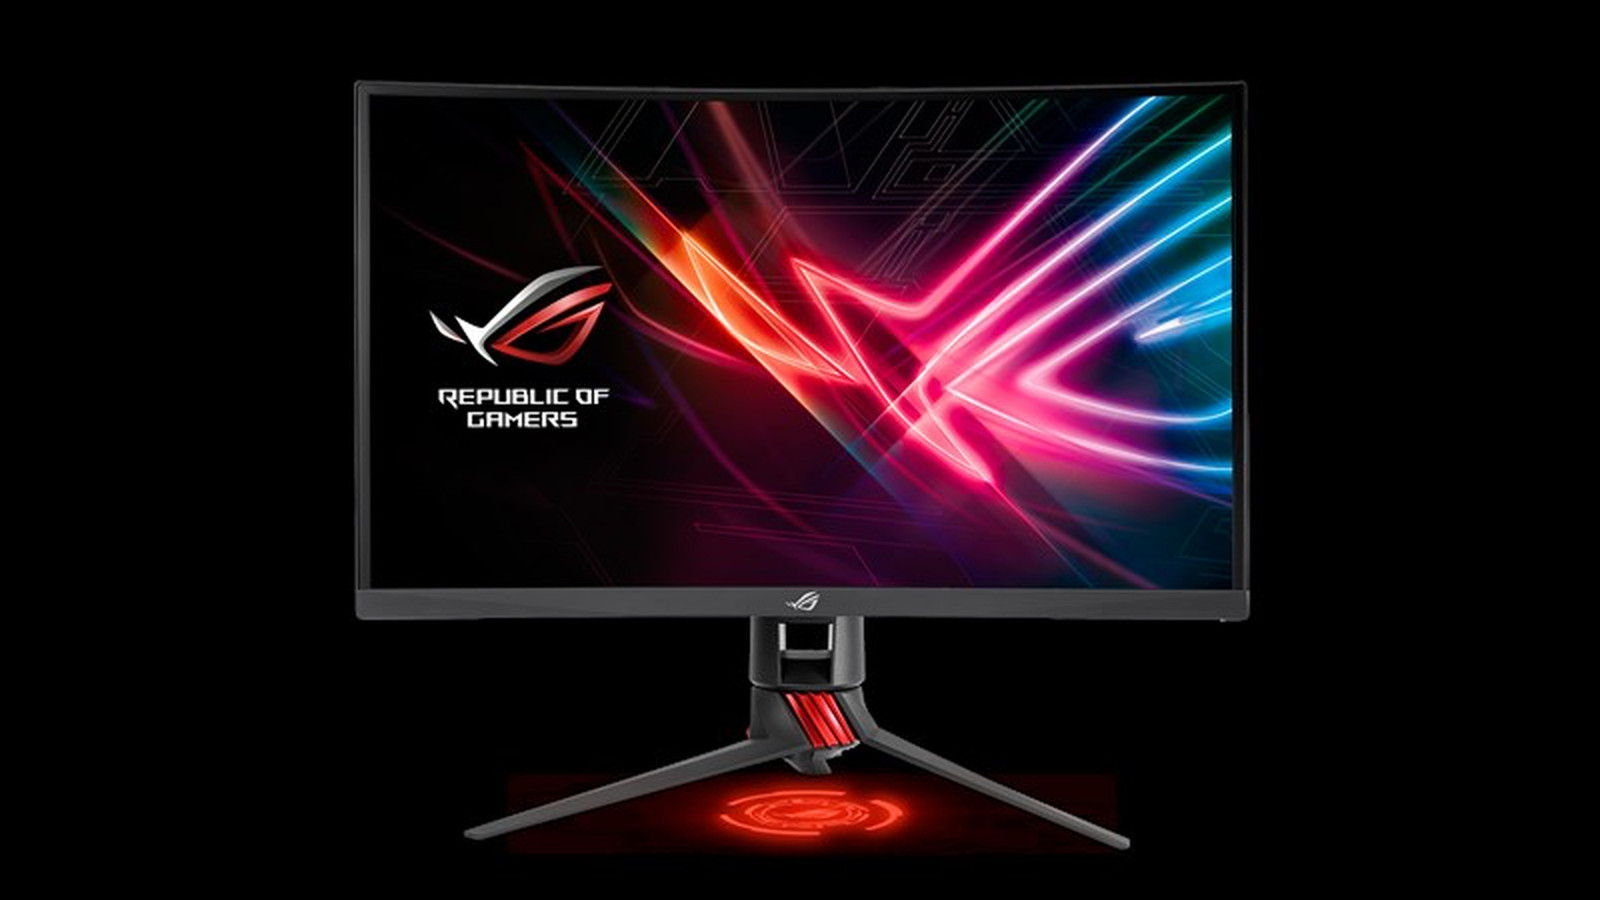 theverge.com - Asus' new curved monitor offers smoother gaming on a budget